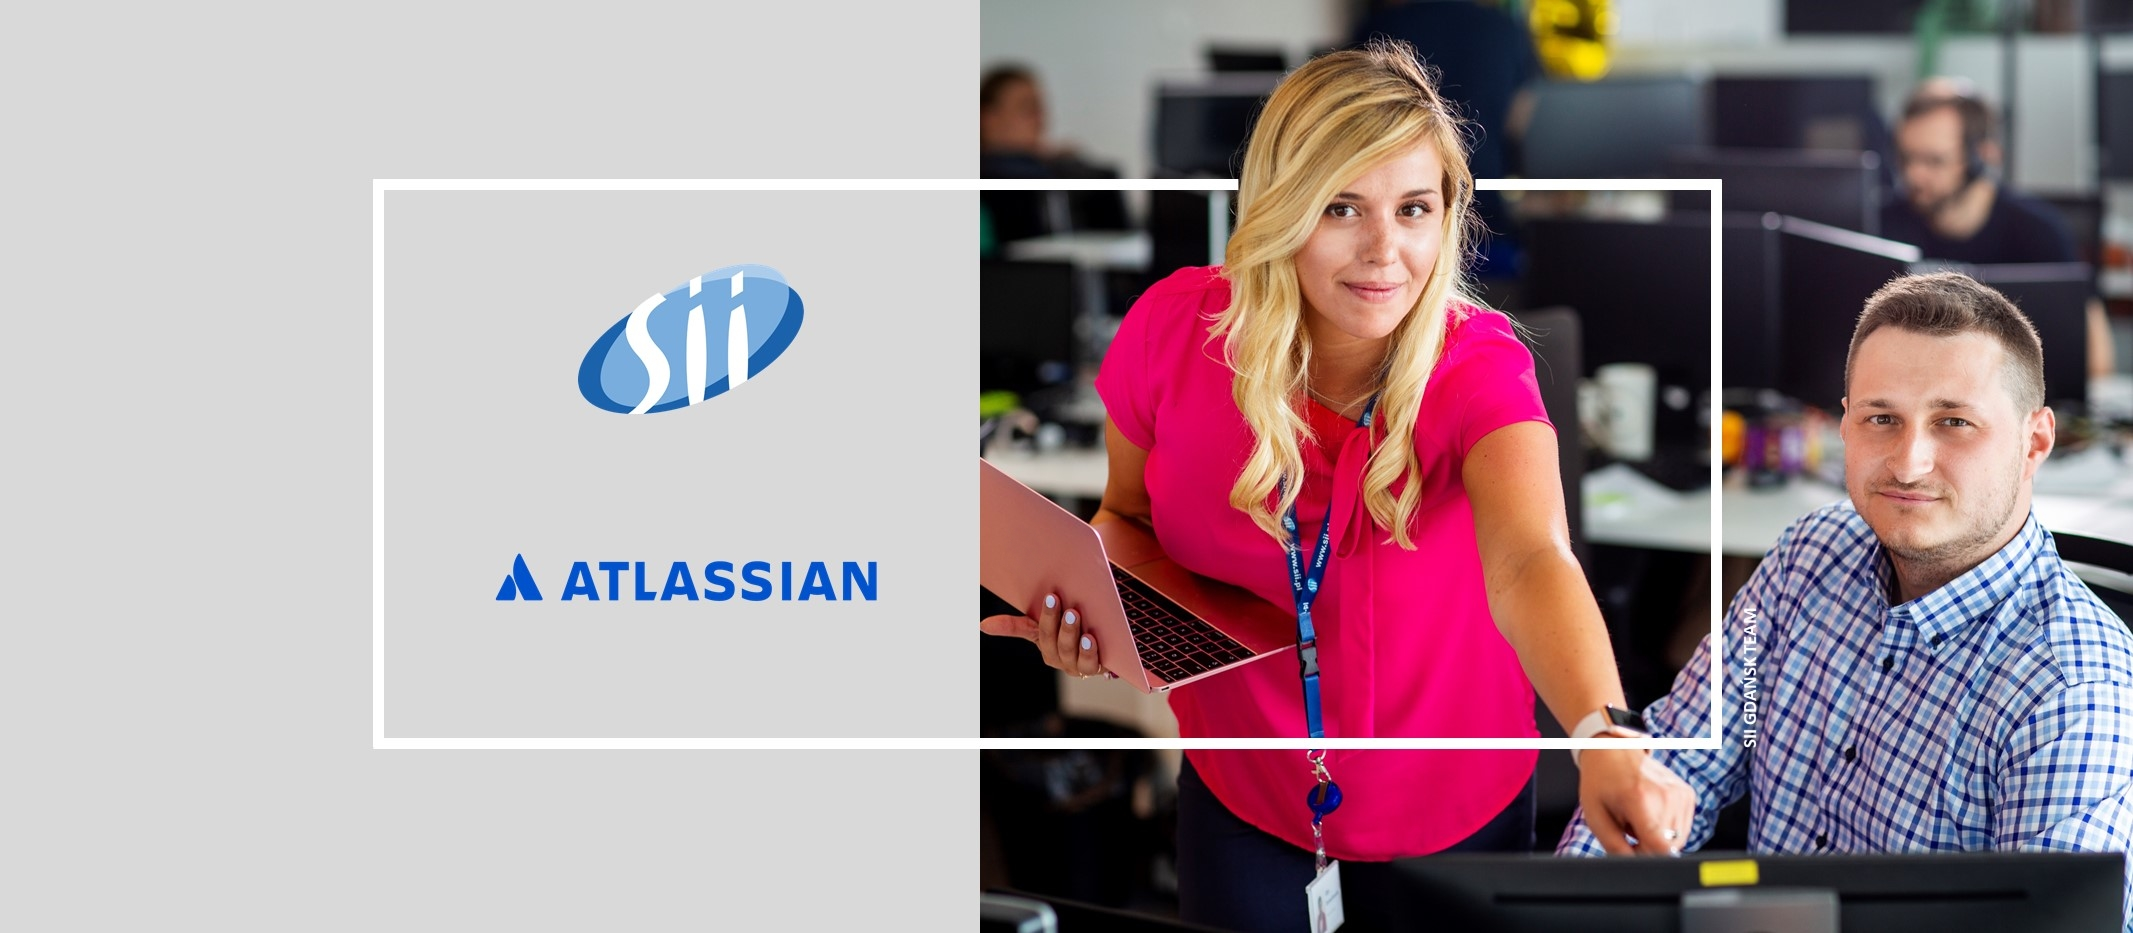 Sii teams up with Atlassian: a new dimension of projects for IT and business